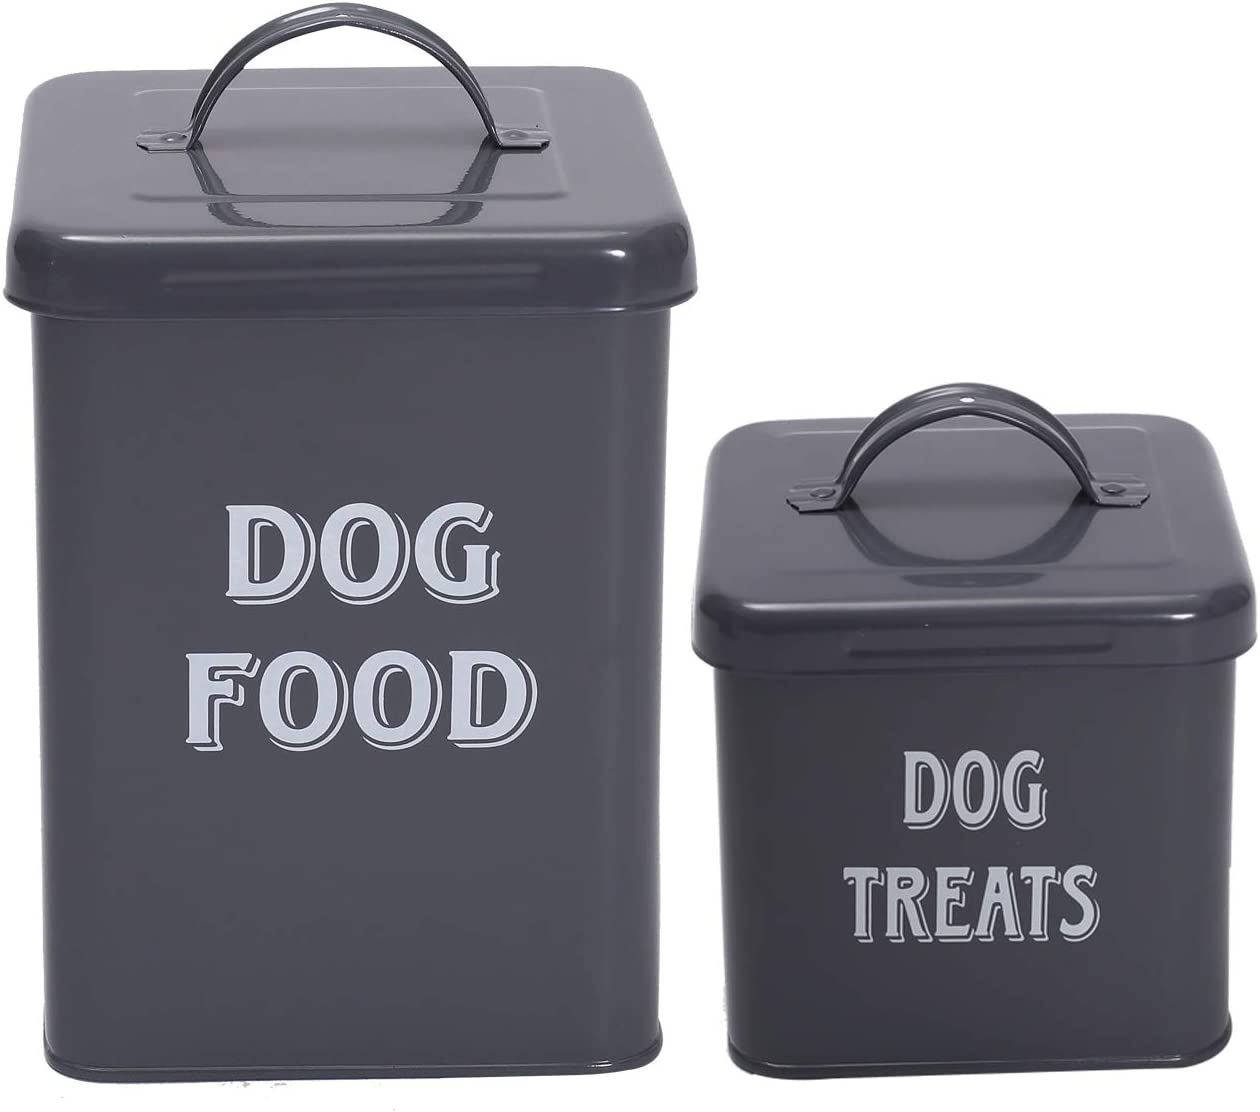 Pethiy Dog Food and Treats Containers Set with Scoop for Dogs-Vintage White Powder-Coated Carbon Steel - Tight Fitting Lids - Storage Canister Tins Small-Gray